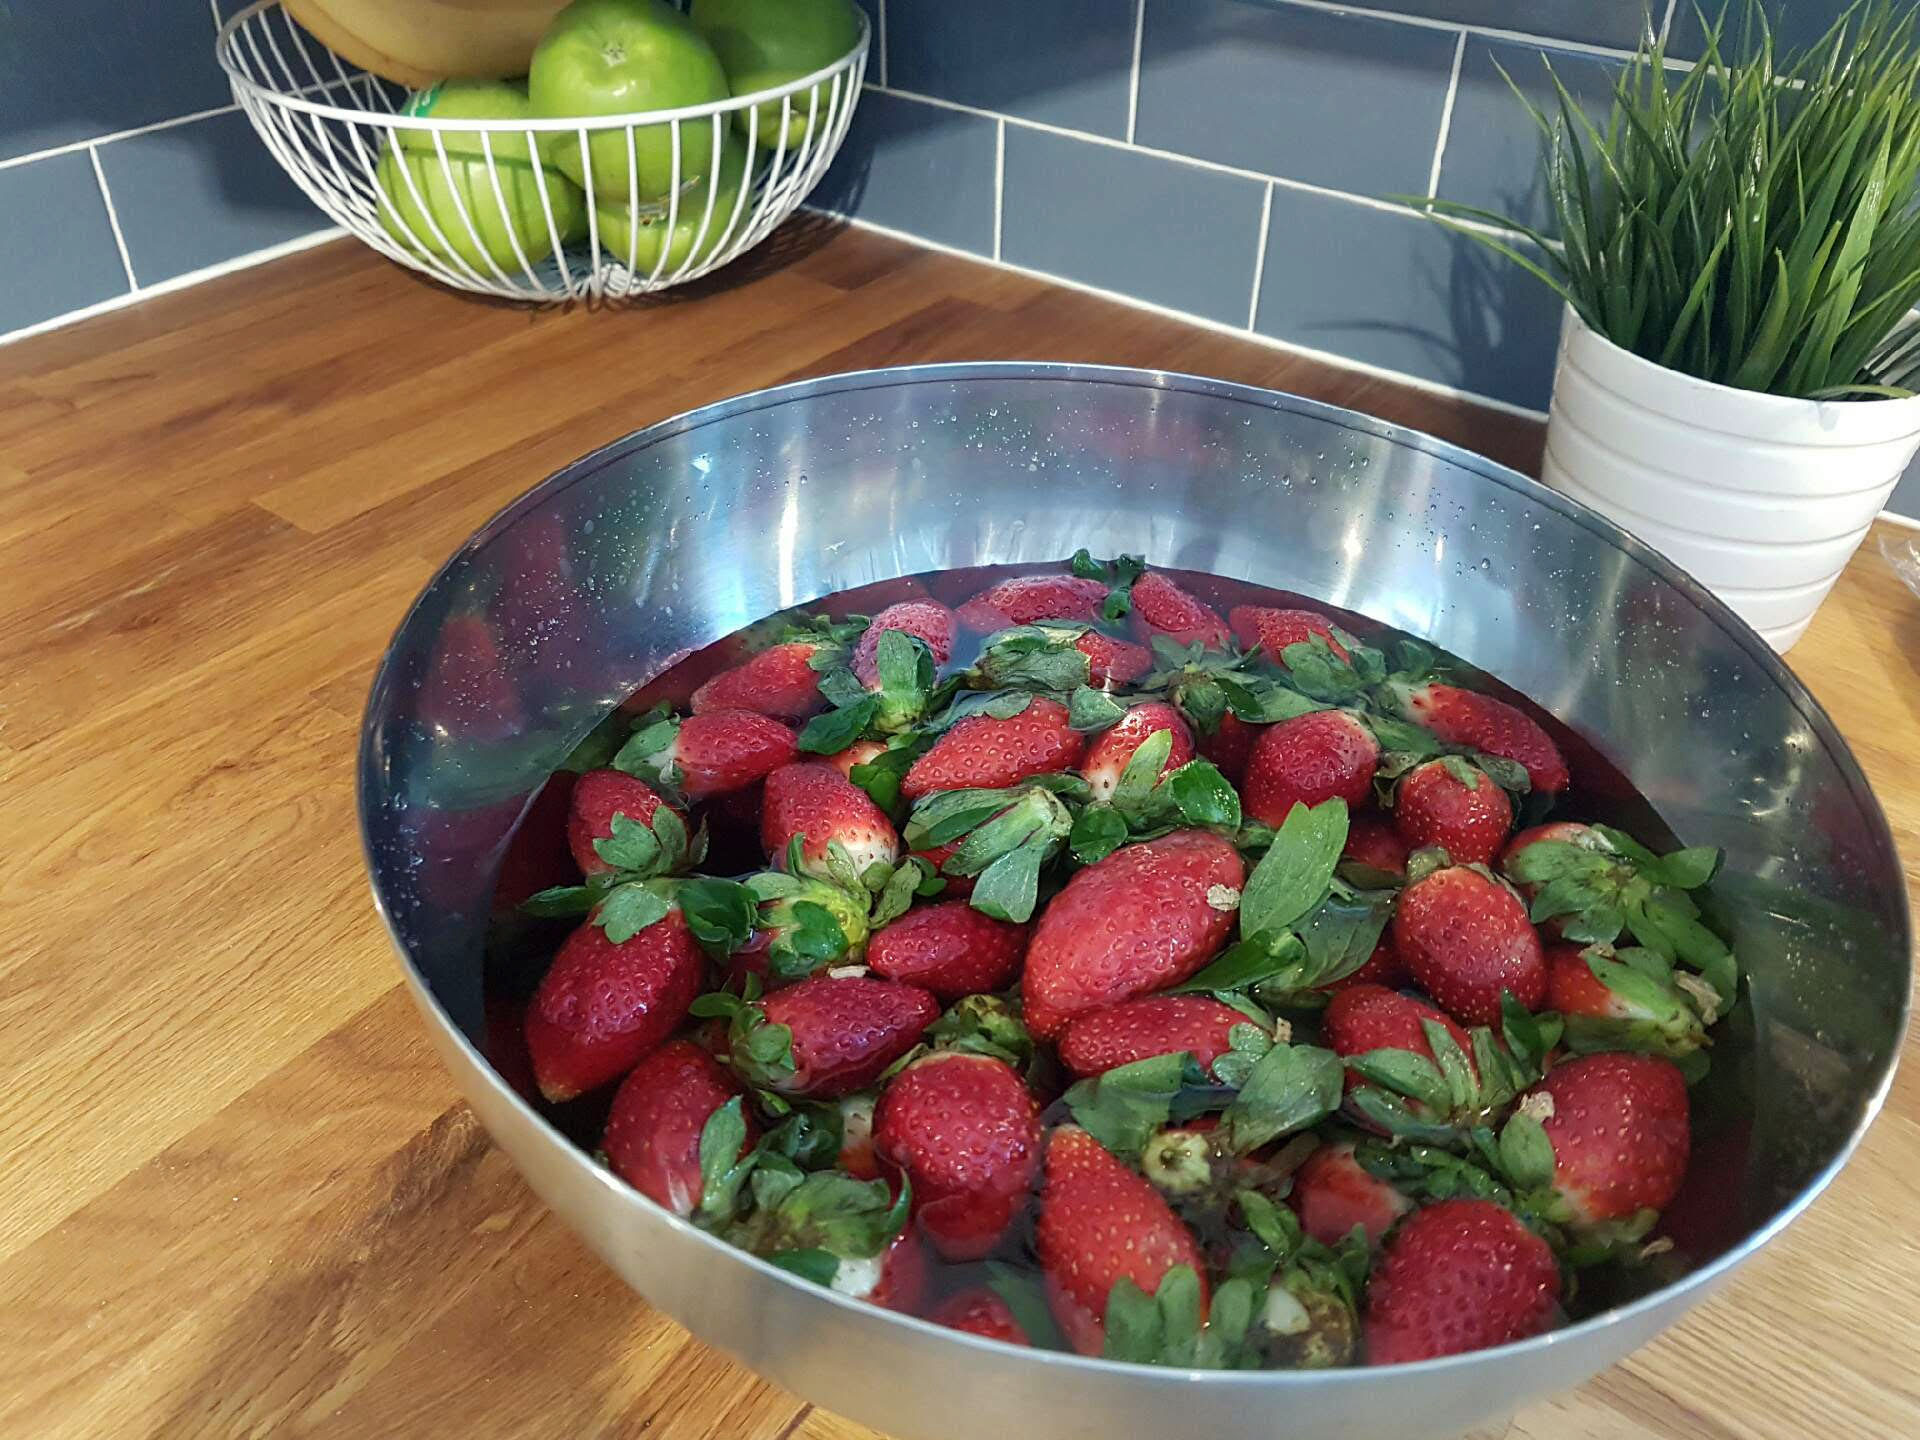 Strawberries in fruit and veggie soak